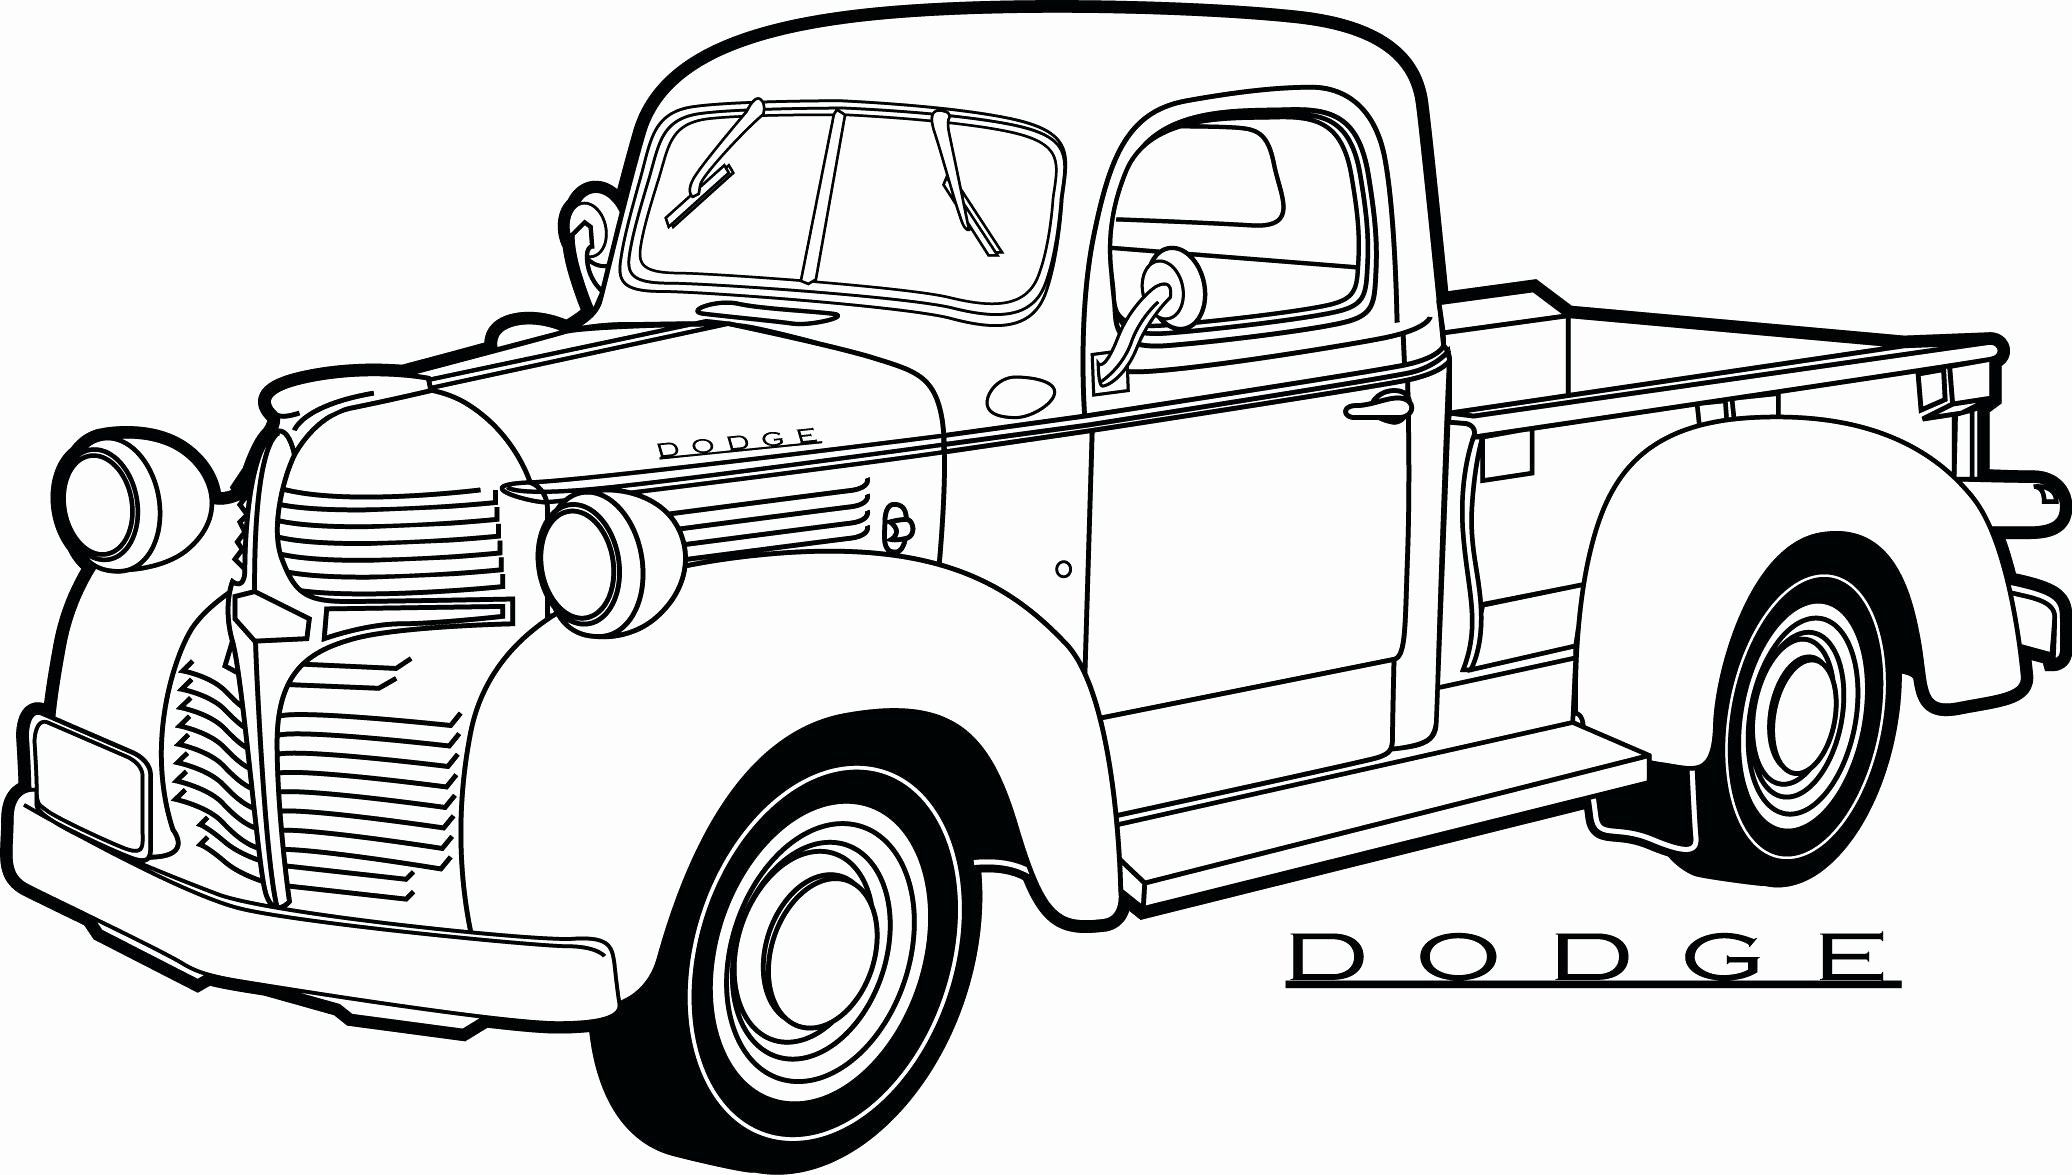 Ford Trucks Coloring Pages Elegant Truck Coloring Pages Truck Coloring Pages Cars Coloring Pages Pickup Trucks